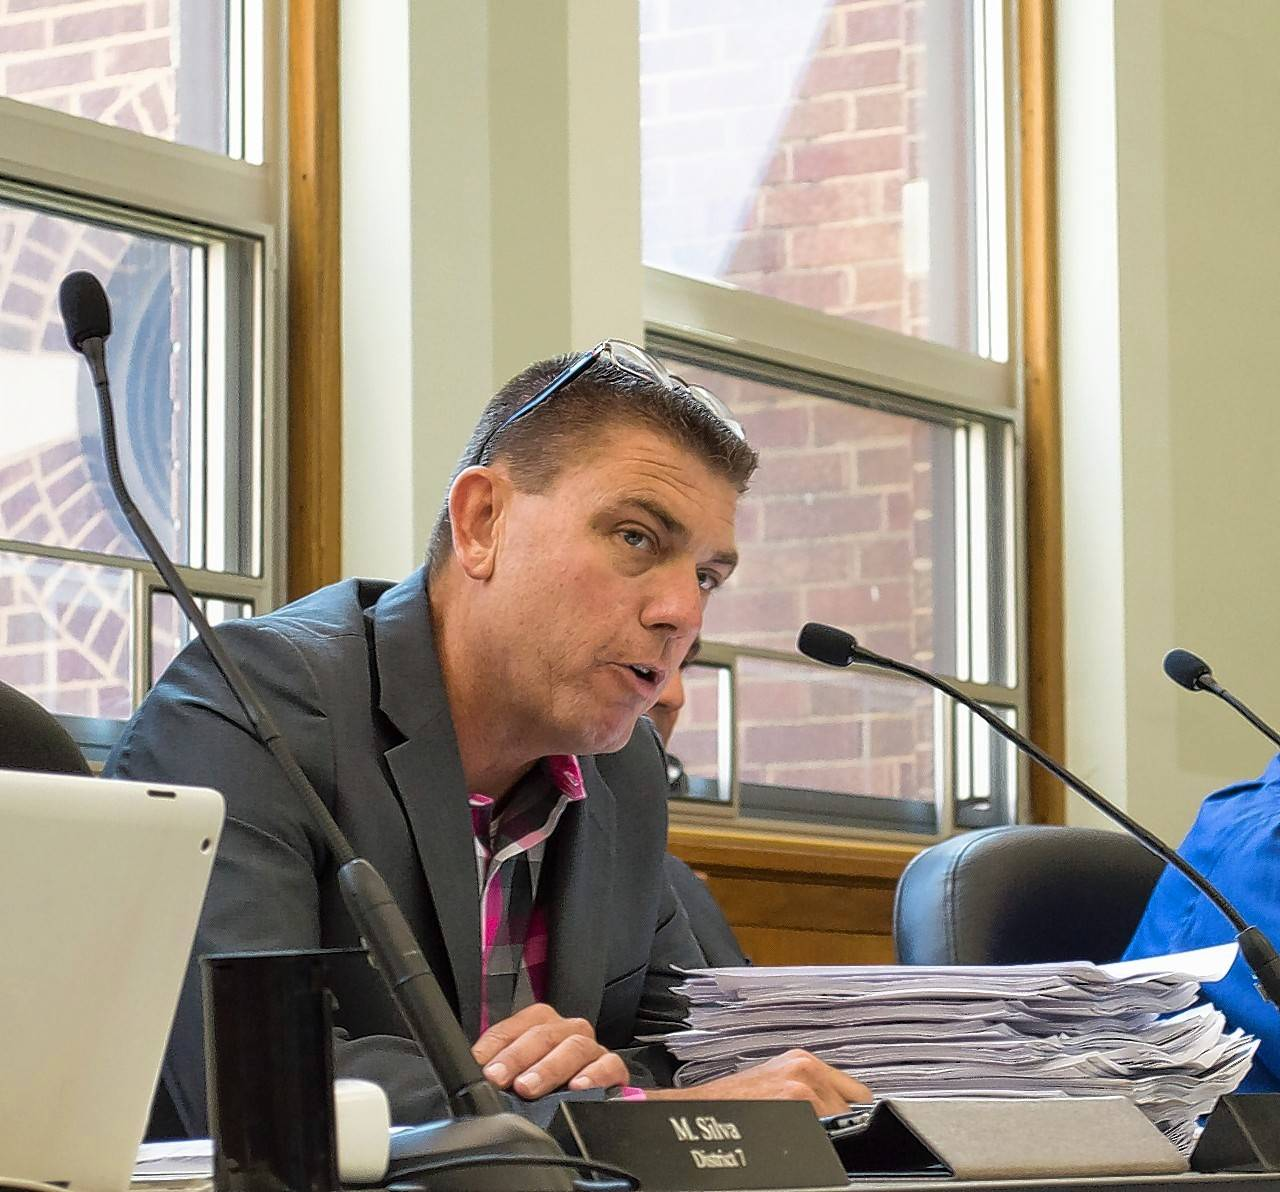 Kane County Board Member Brian Dahl would support unfreezing the county's property tax levy if there is no other way to balance the county's 2017 budget.